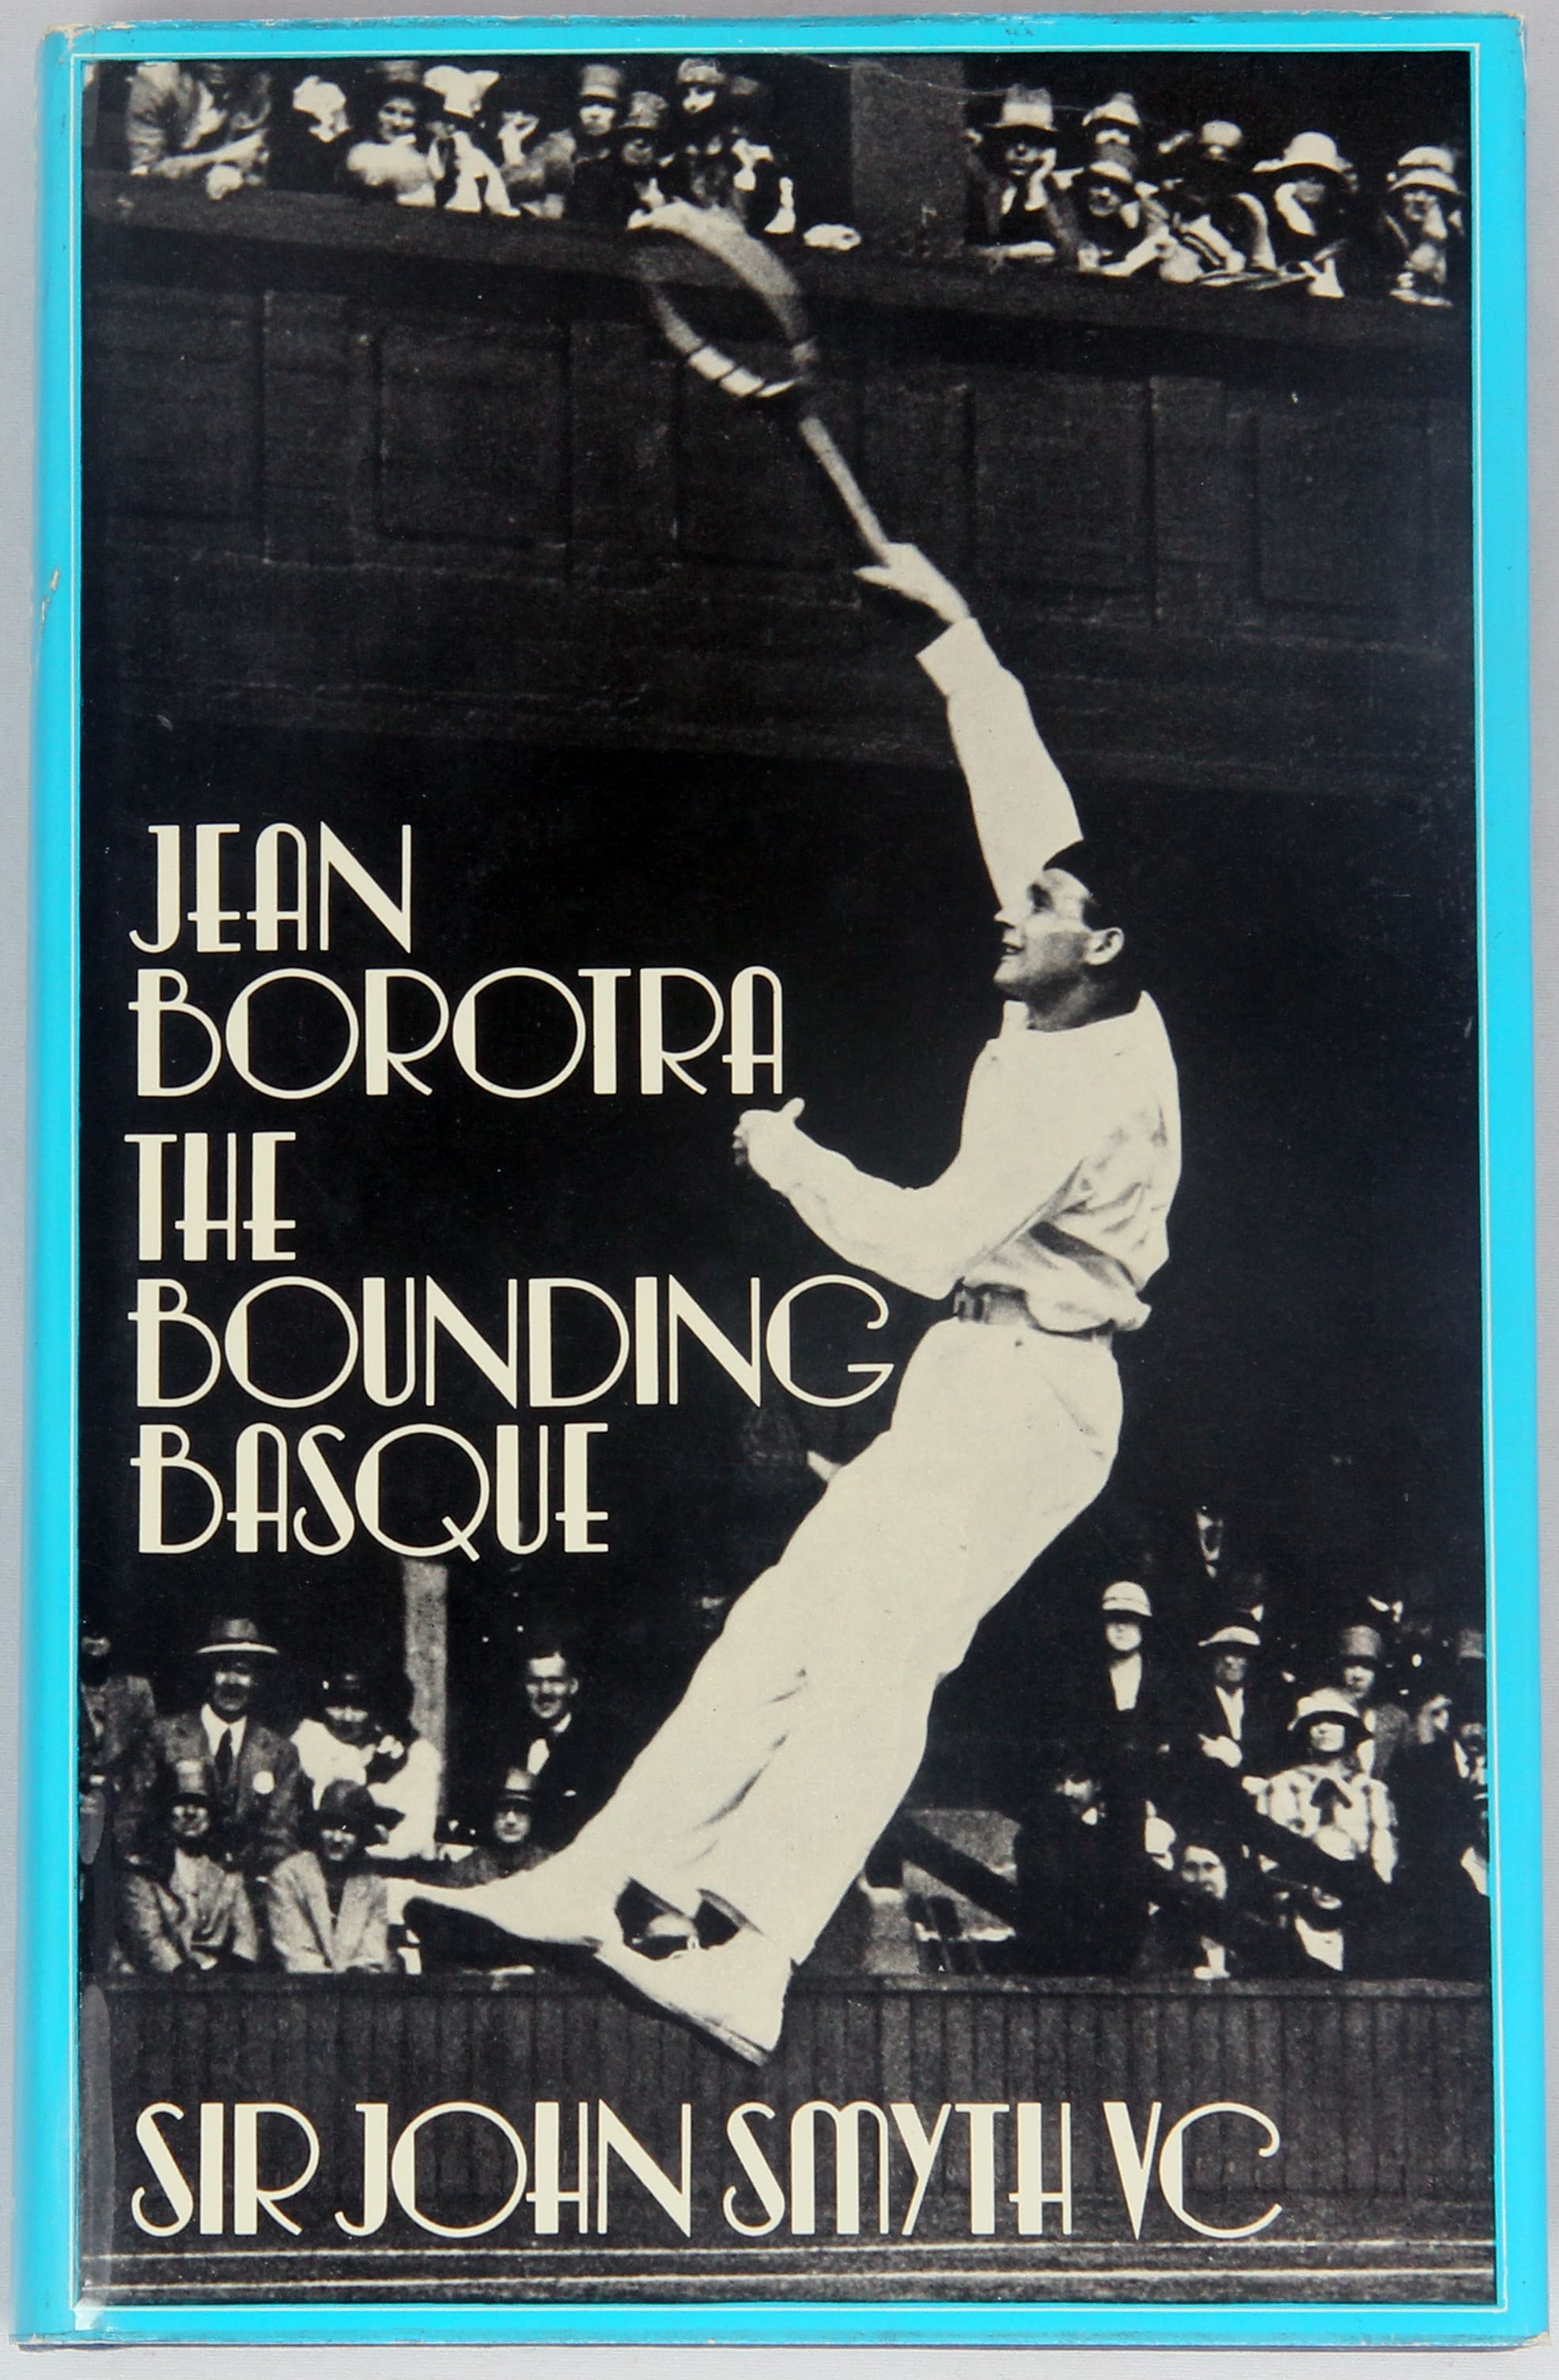 Jean Borotra The Bounding Basque